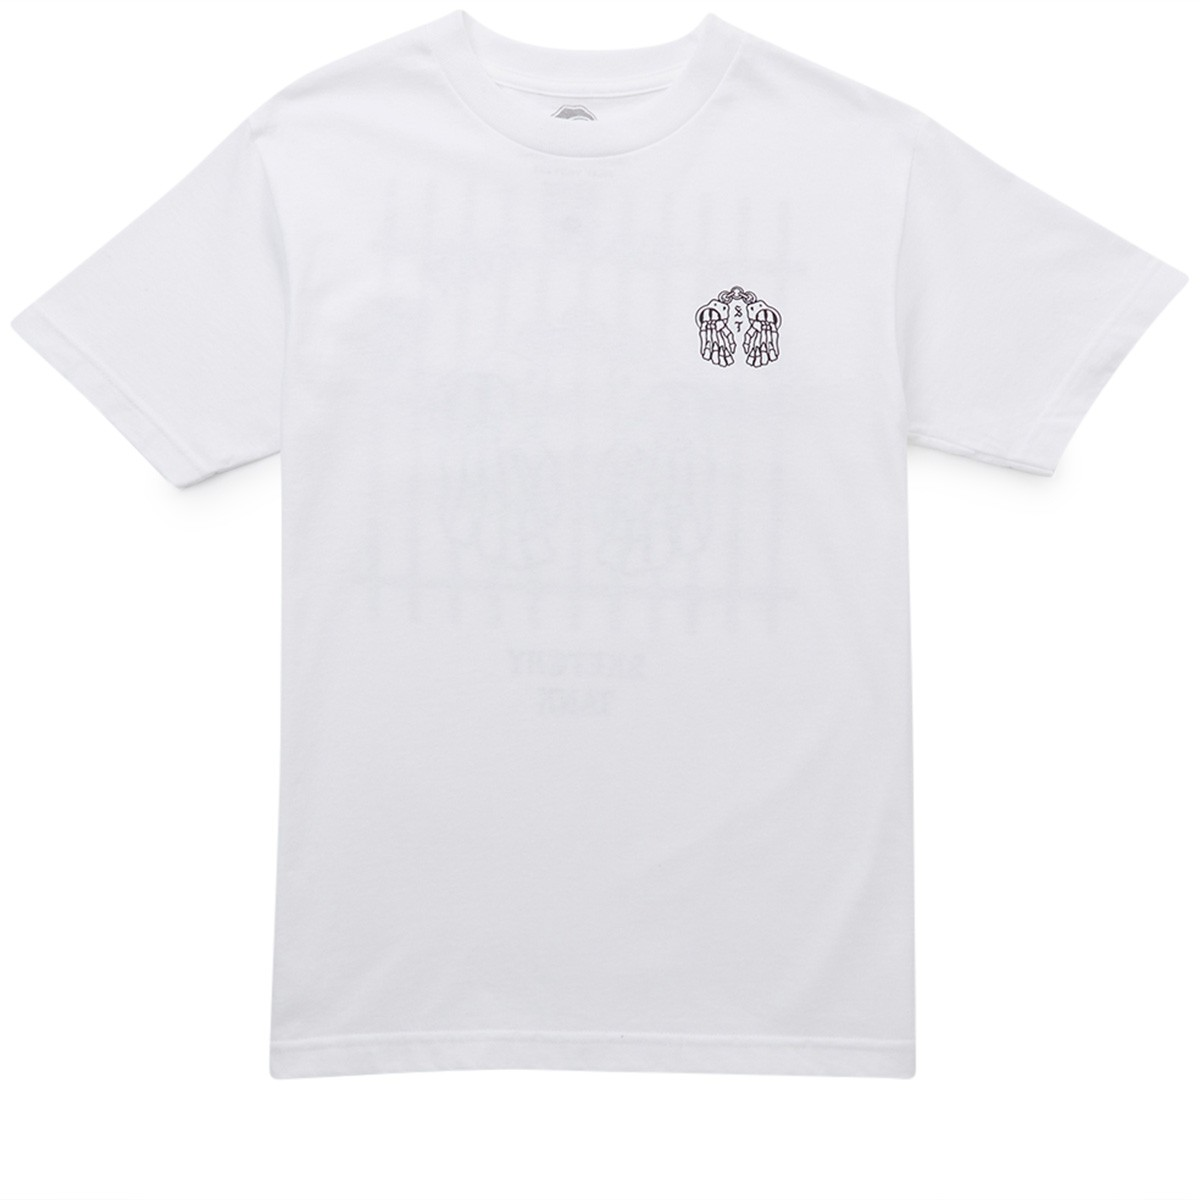 Sketchy tank don 39 t wait t shirt white for Be sketchy t shirts